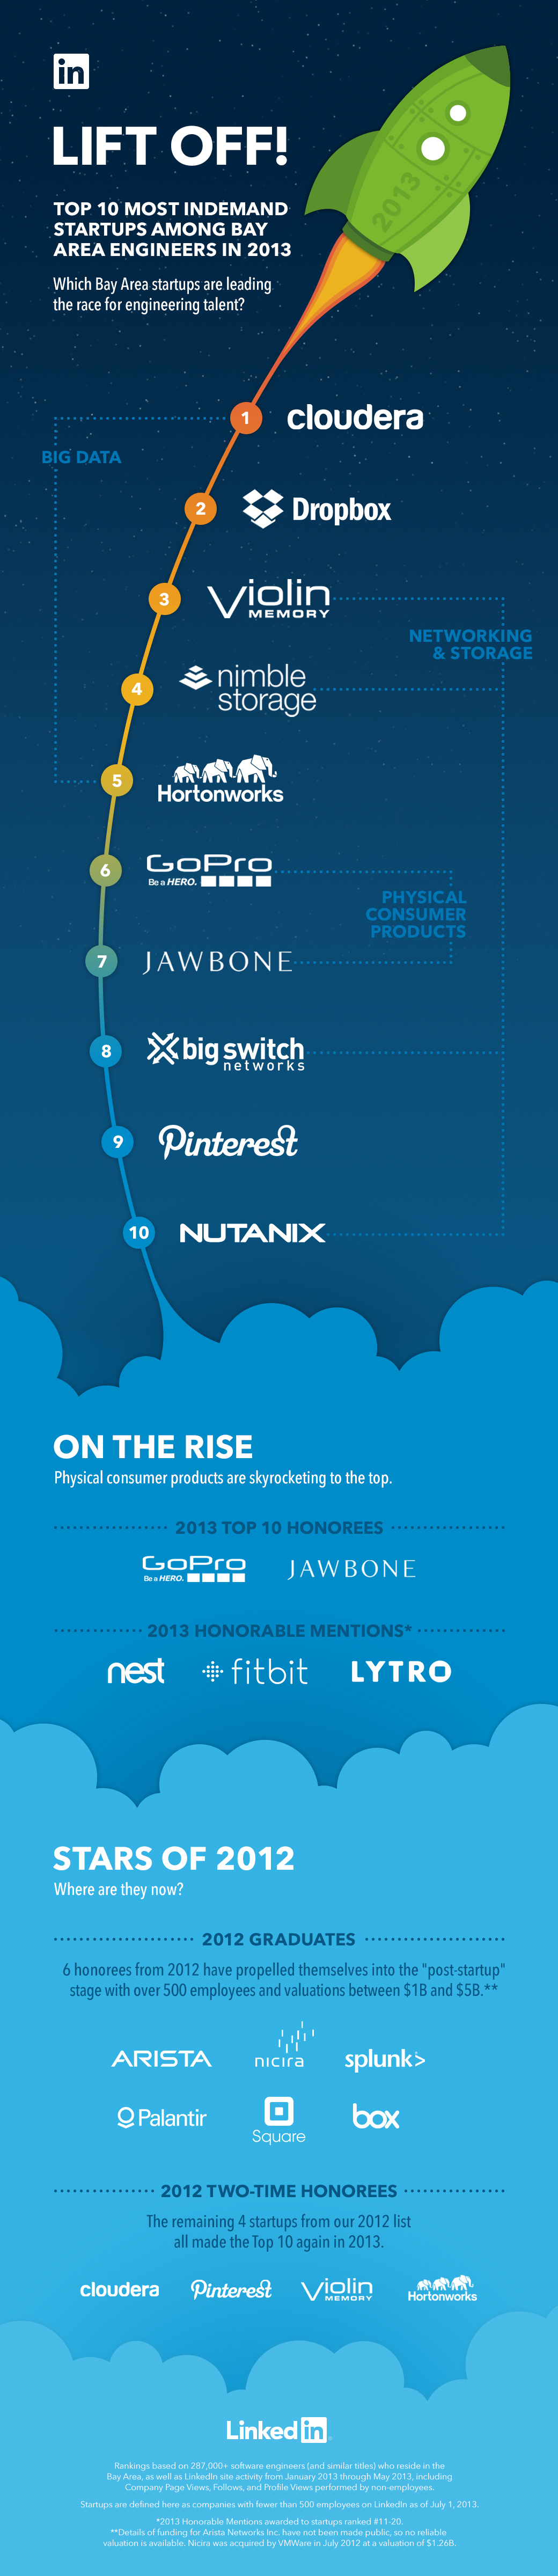 InDemand Tech Startups 2013 Infographic